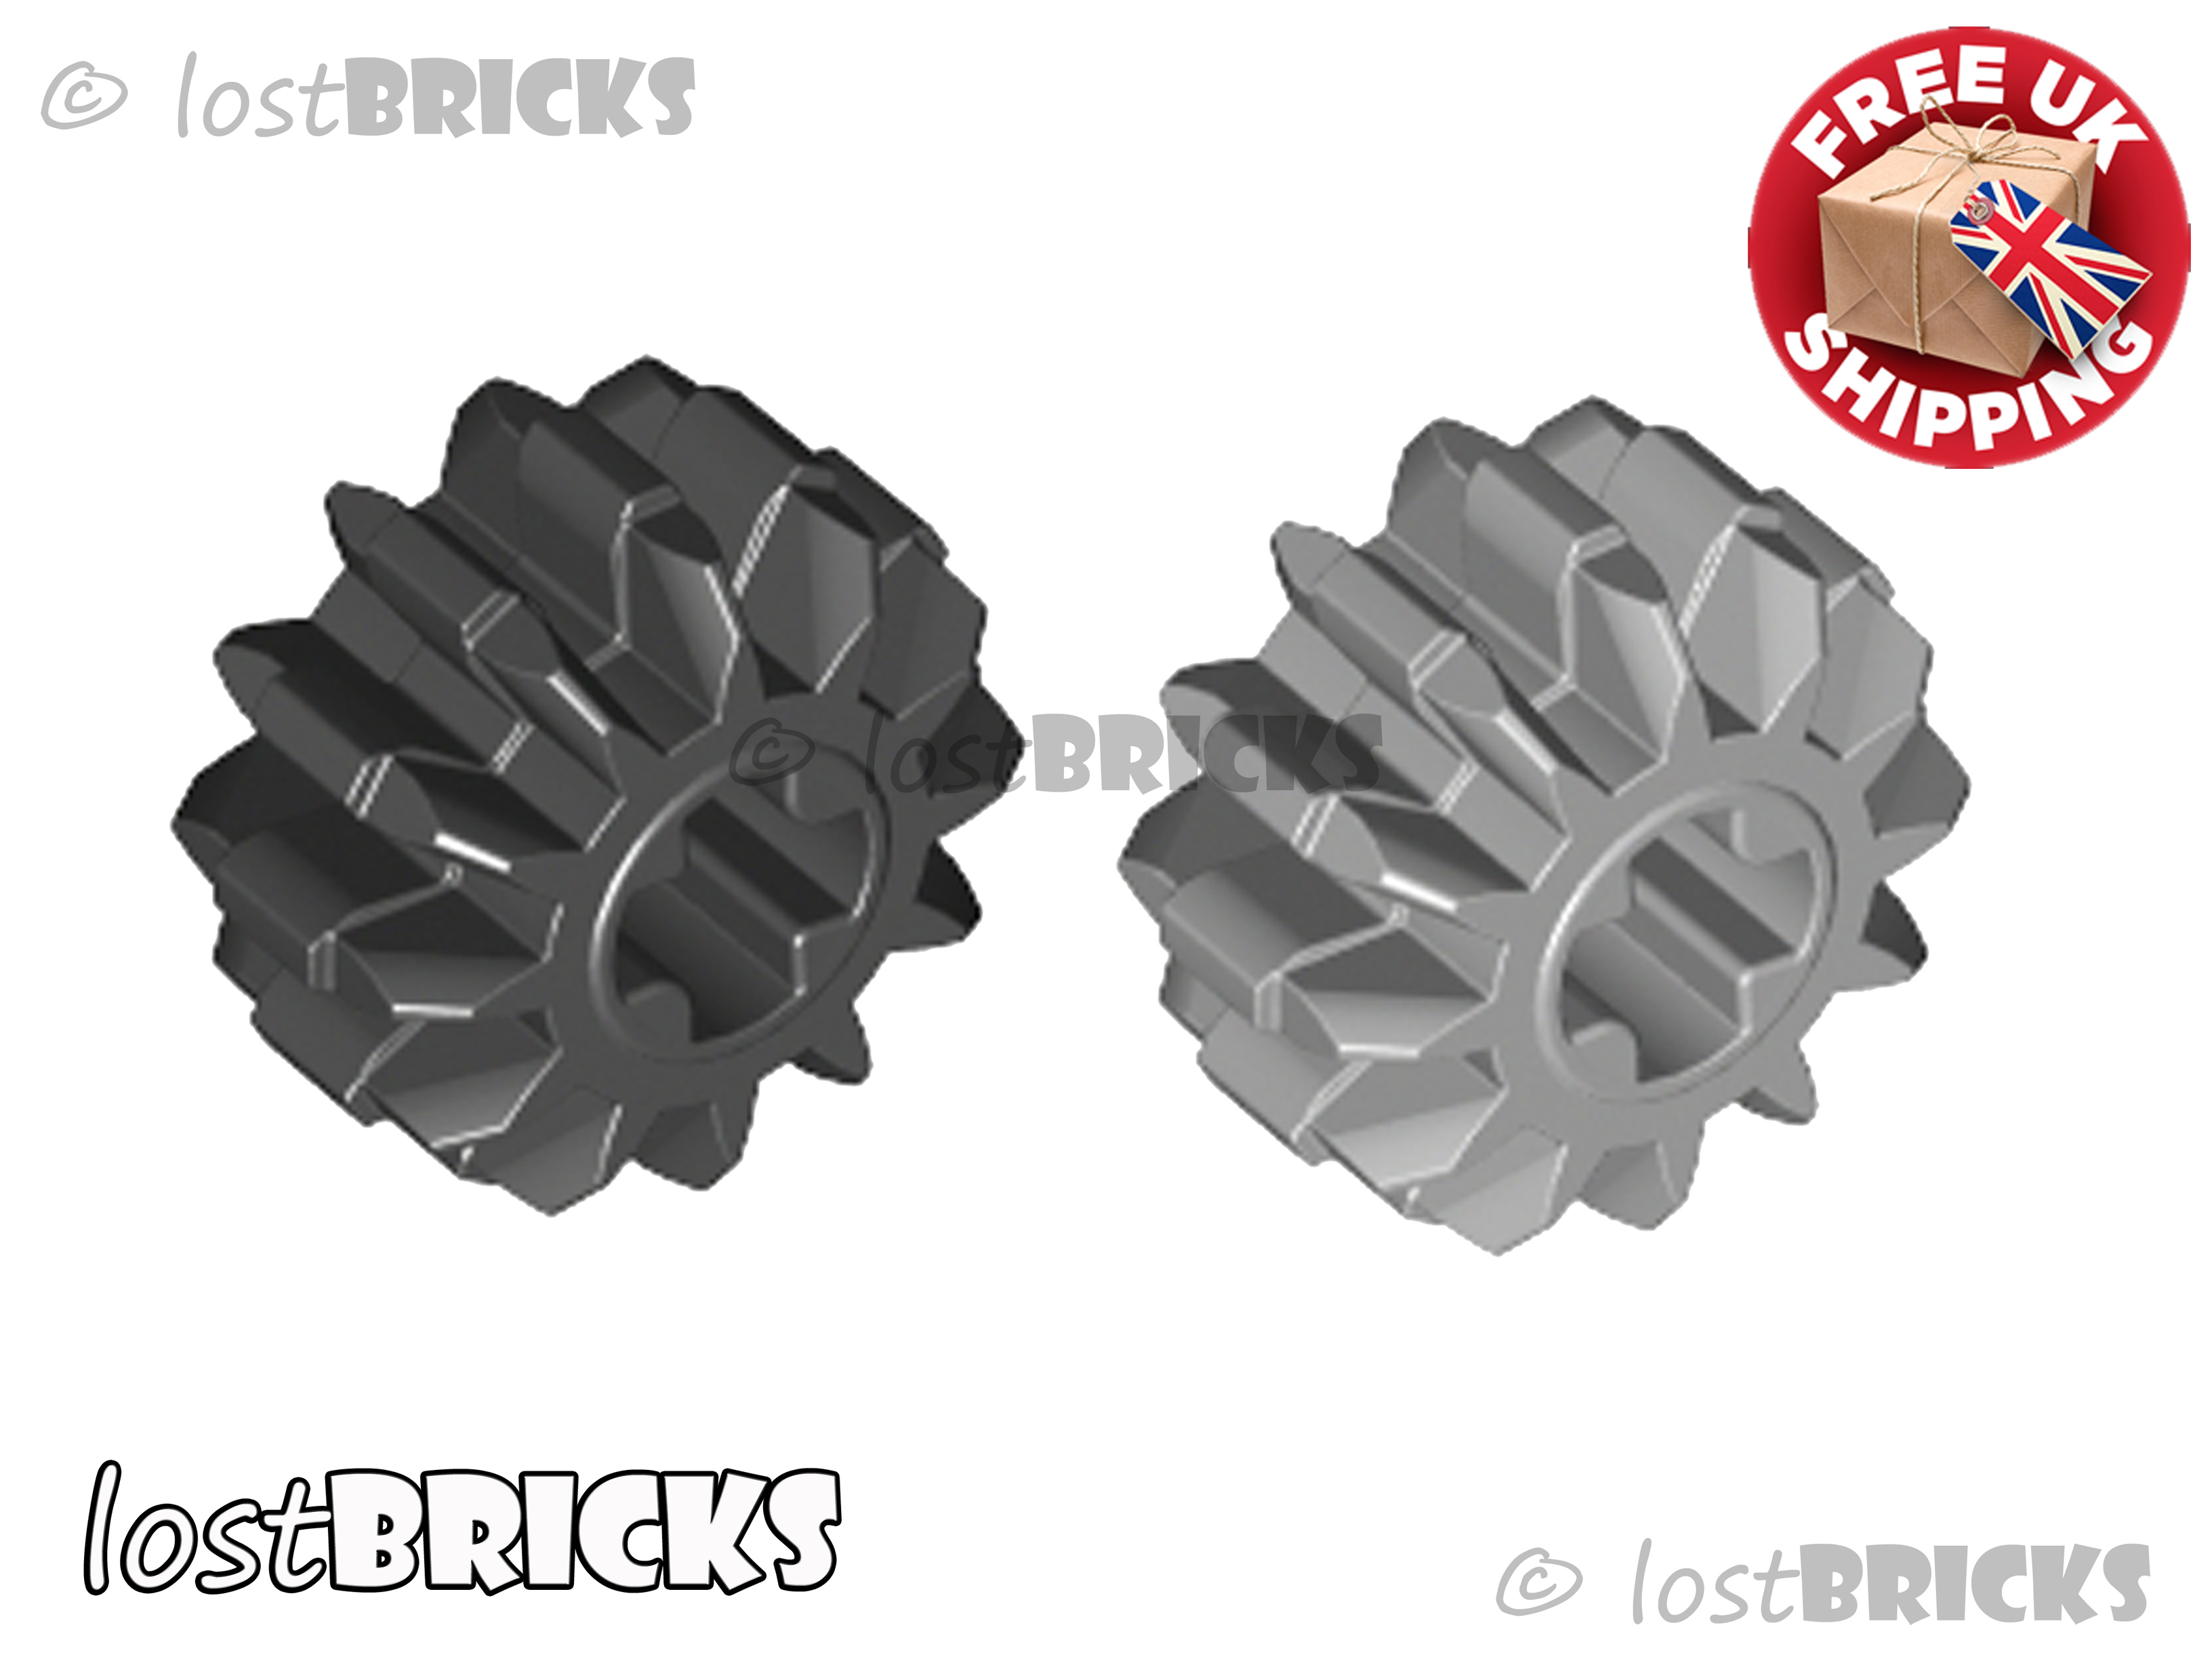 LEGO 32270 @@ Technic Gear 12 Tooth Double Bevel